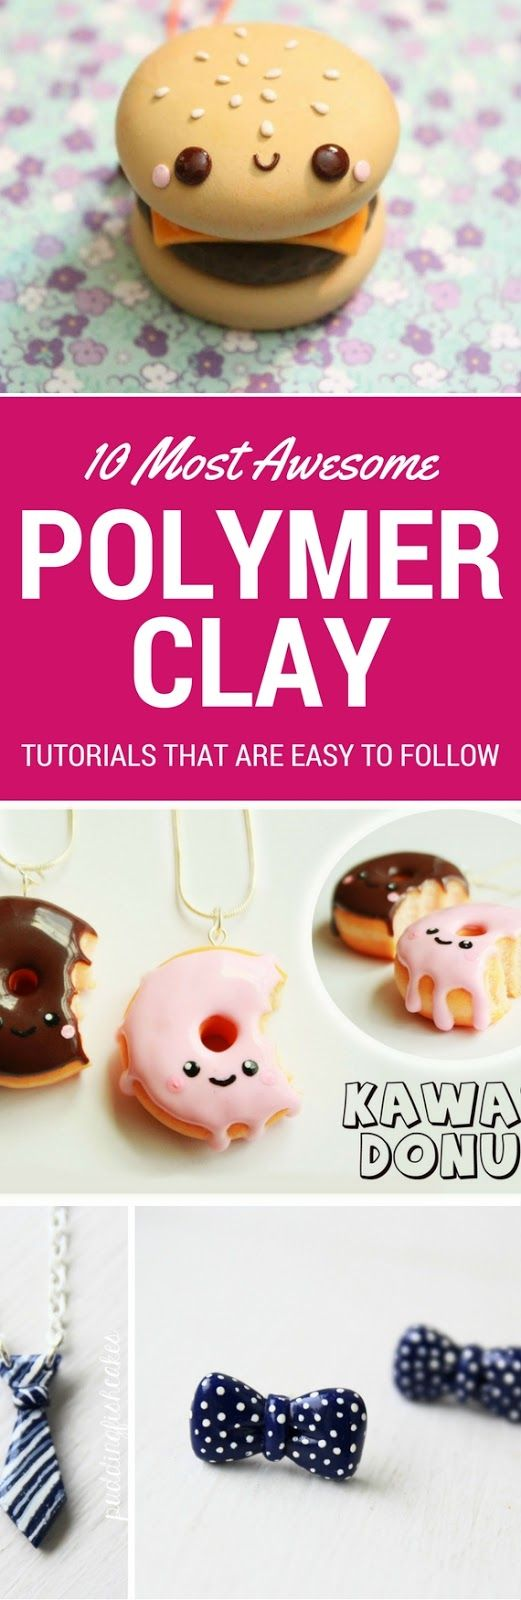 10 Polymer Clay Tutorials Step By Step Anyone Can Follow – Looking for a fun DIY Craft Project? Then you totally have to try